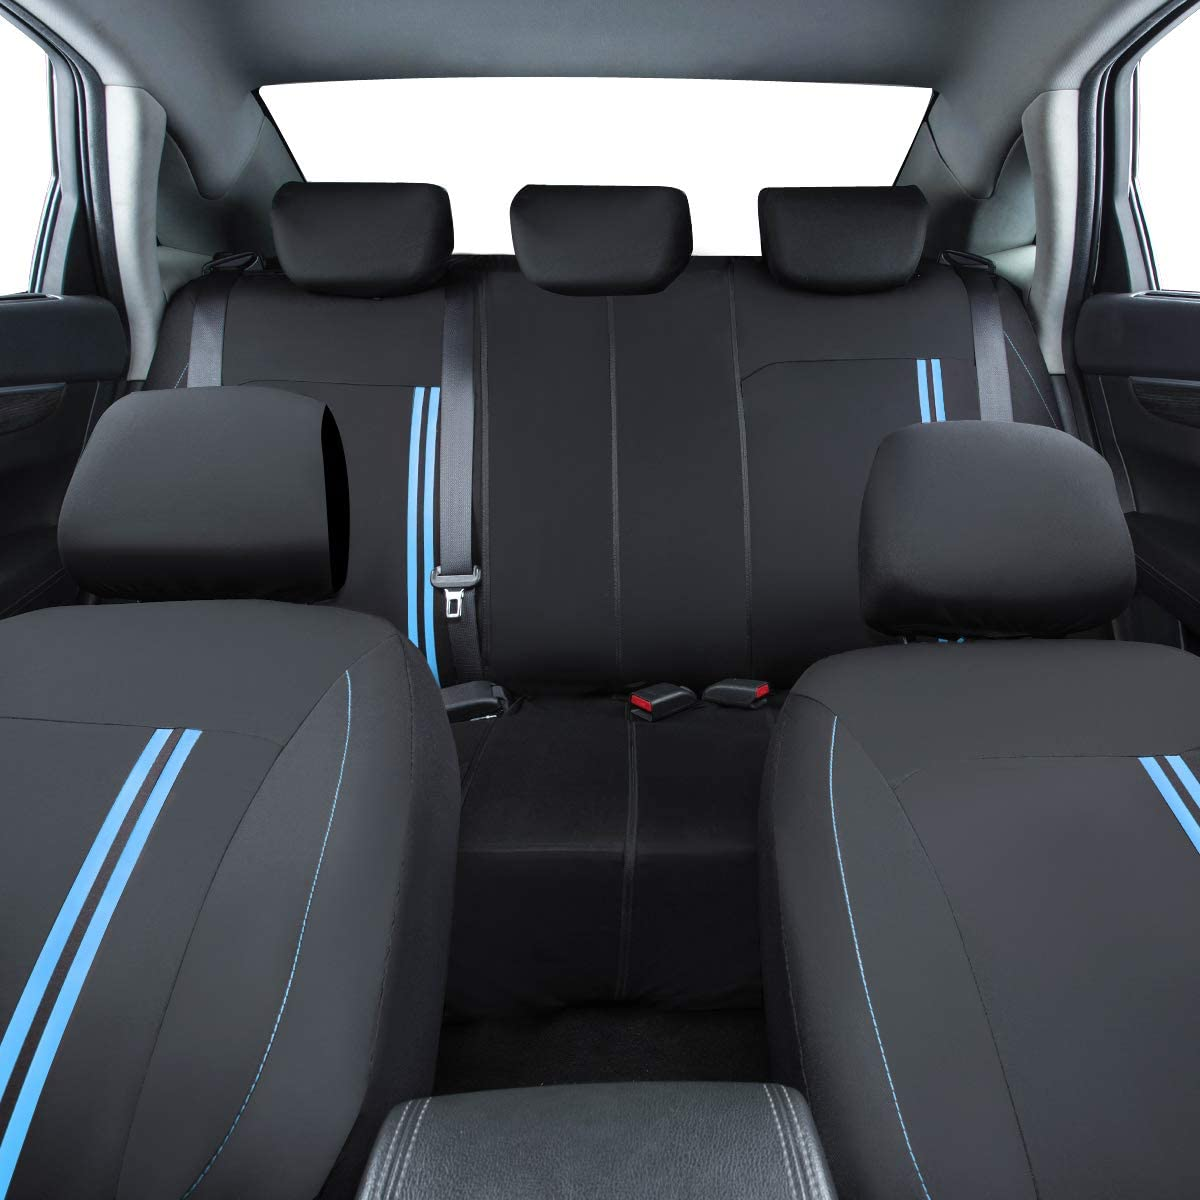 Black with Blue CAR PASS Sporty Strip Full Set Universal Car Seat Cover,Airbag Compatible Fit for Suvs,Vans,Sedans